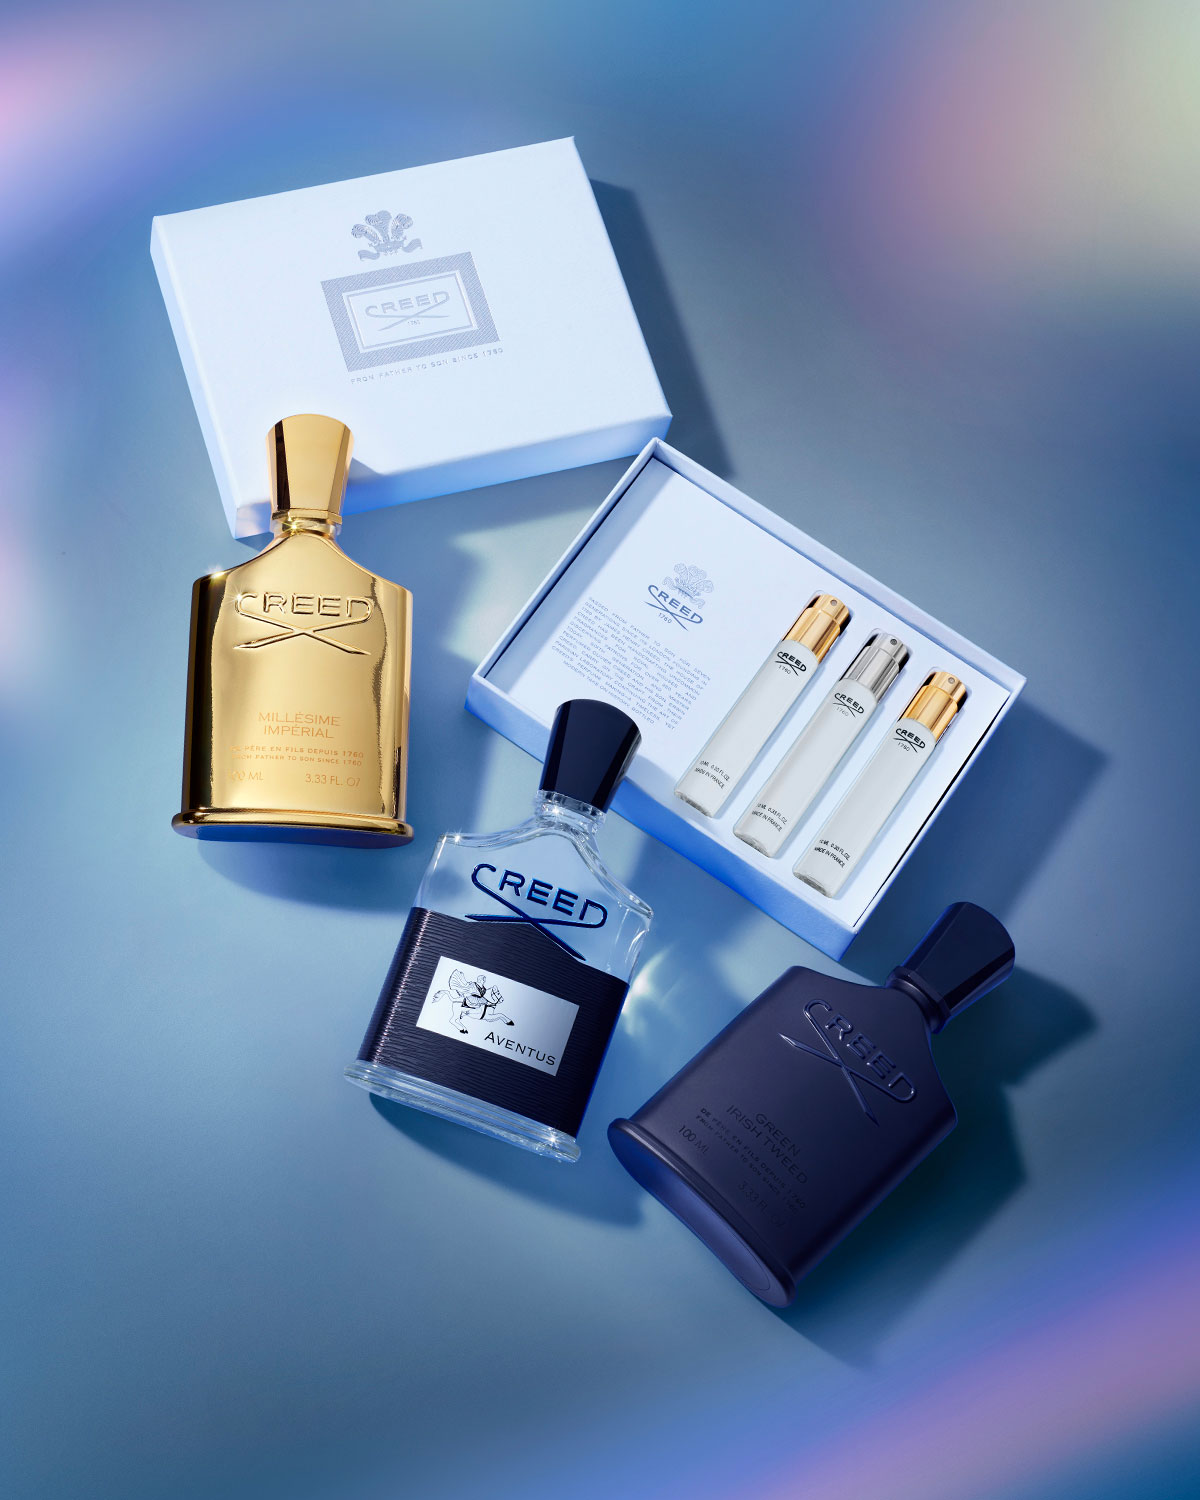 CREED Father's Day Les Essentiels Coffret Set